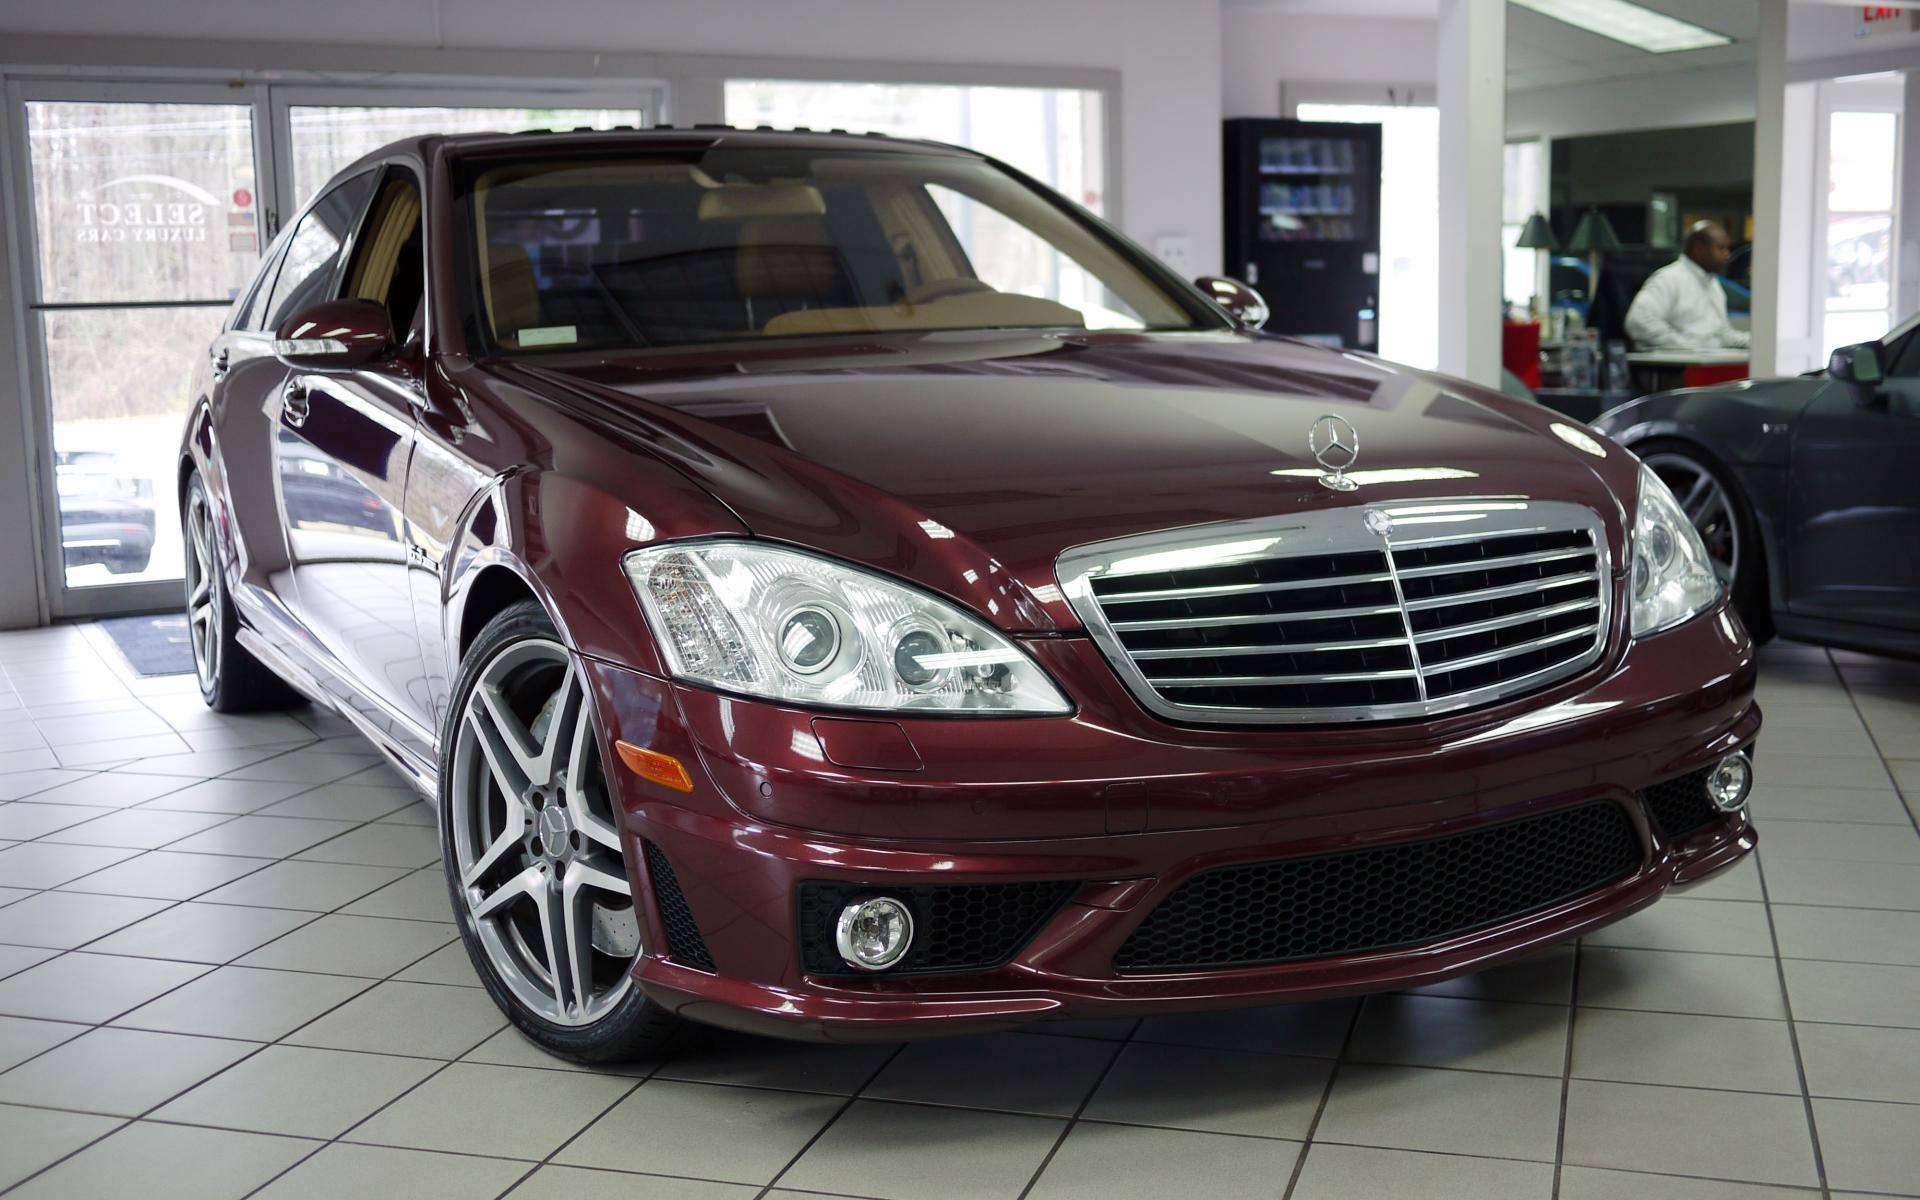 used 2008 mercedes benz s class s63 amg marietta ga. Black Bedroom Furniture Sets. Home Design Ideas